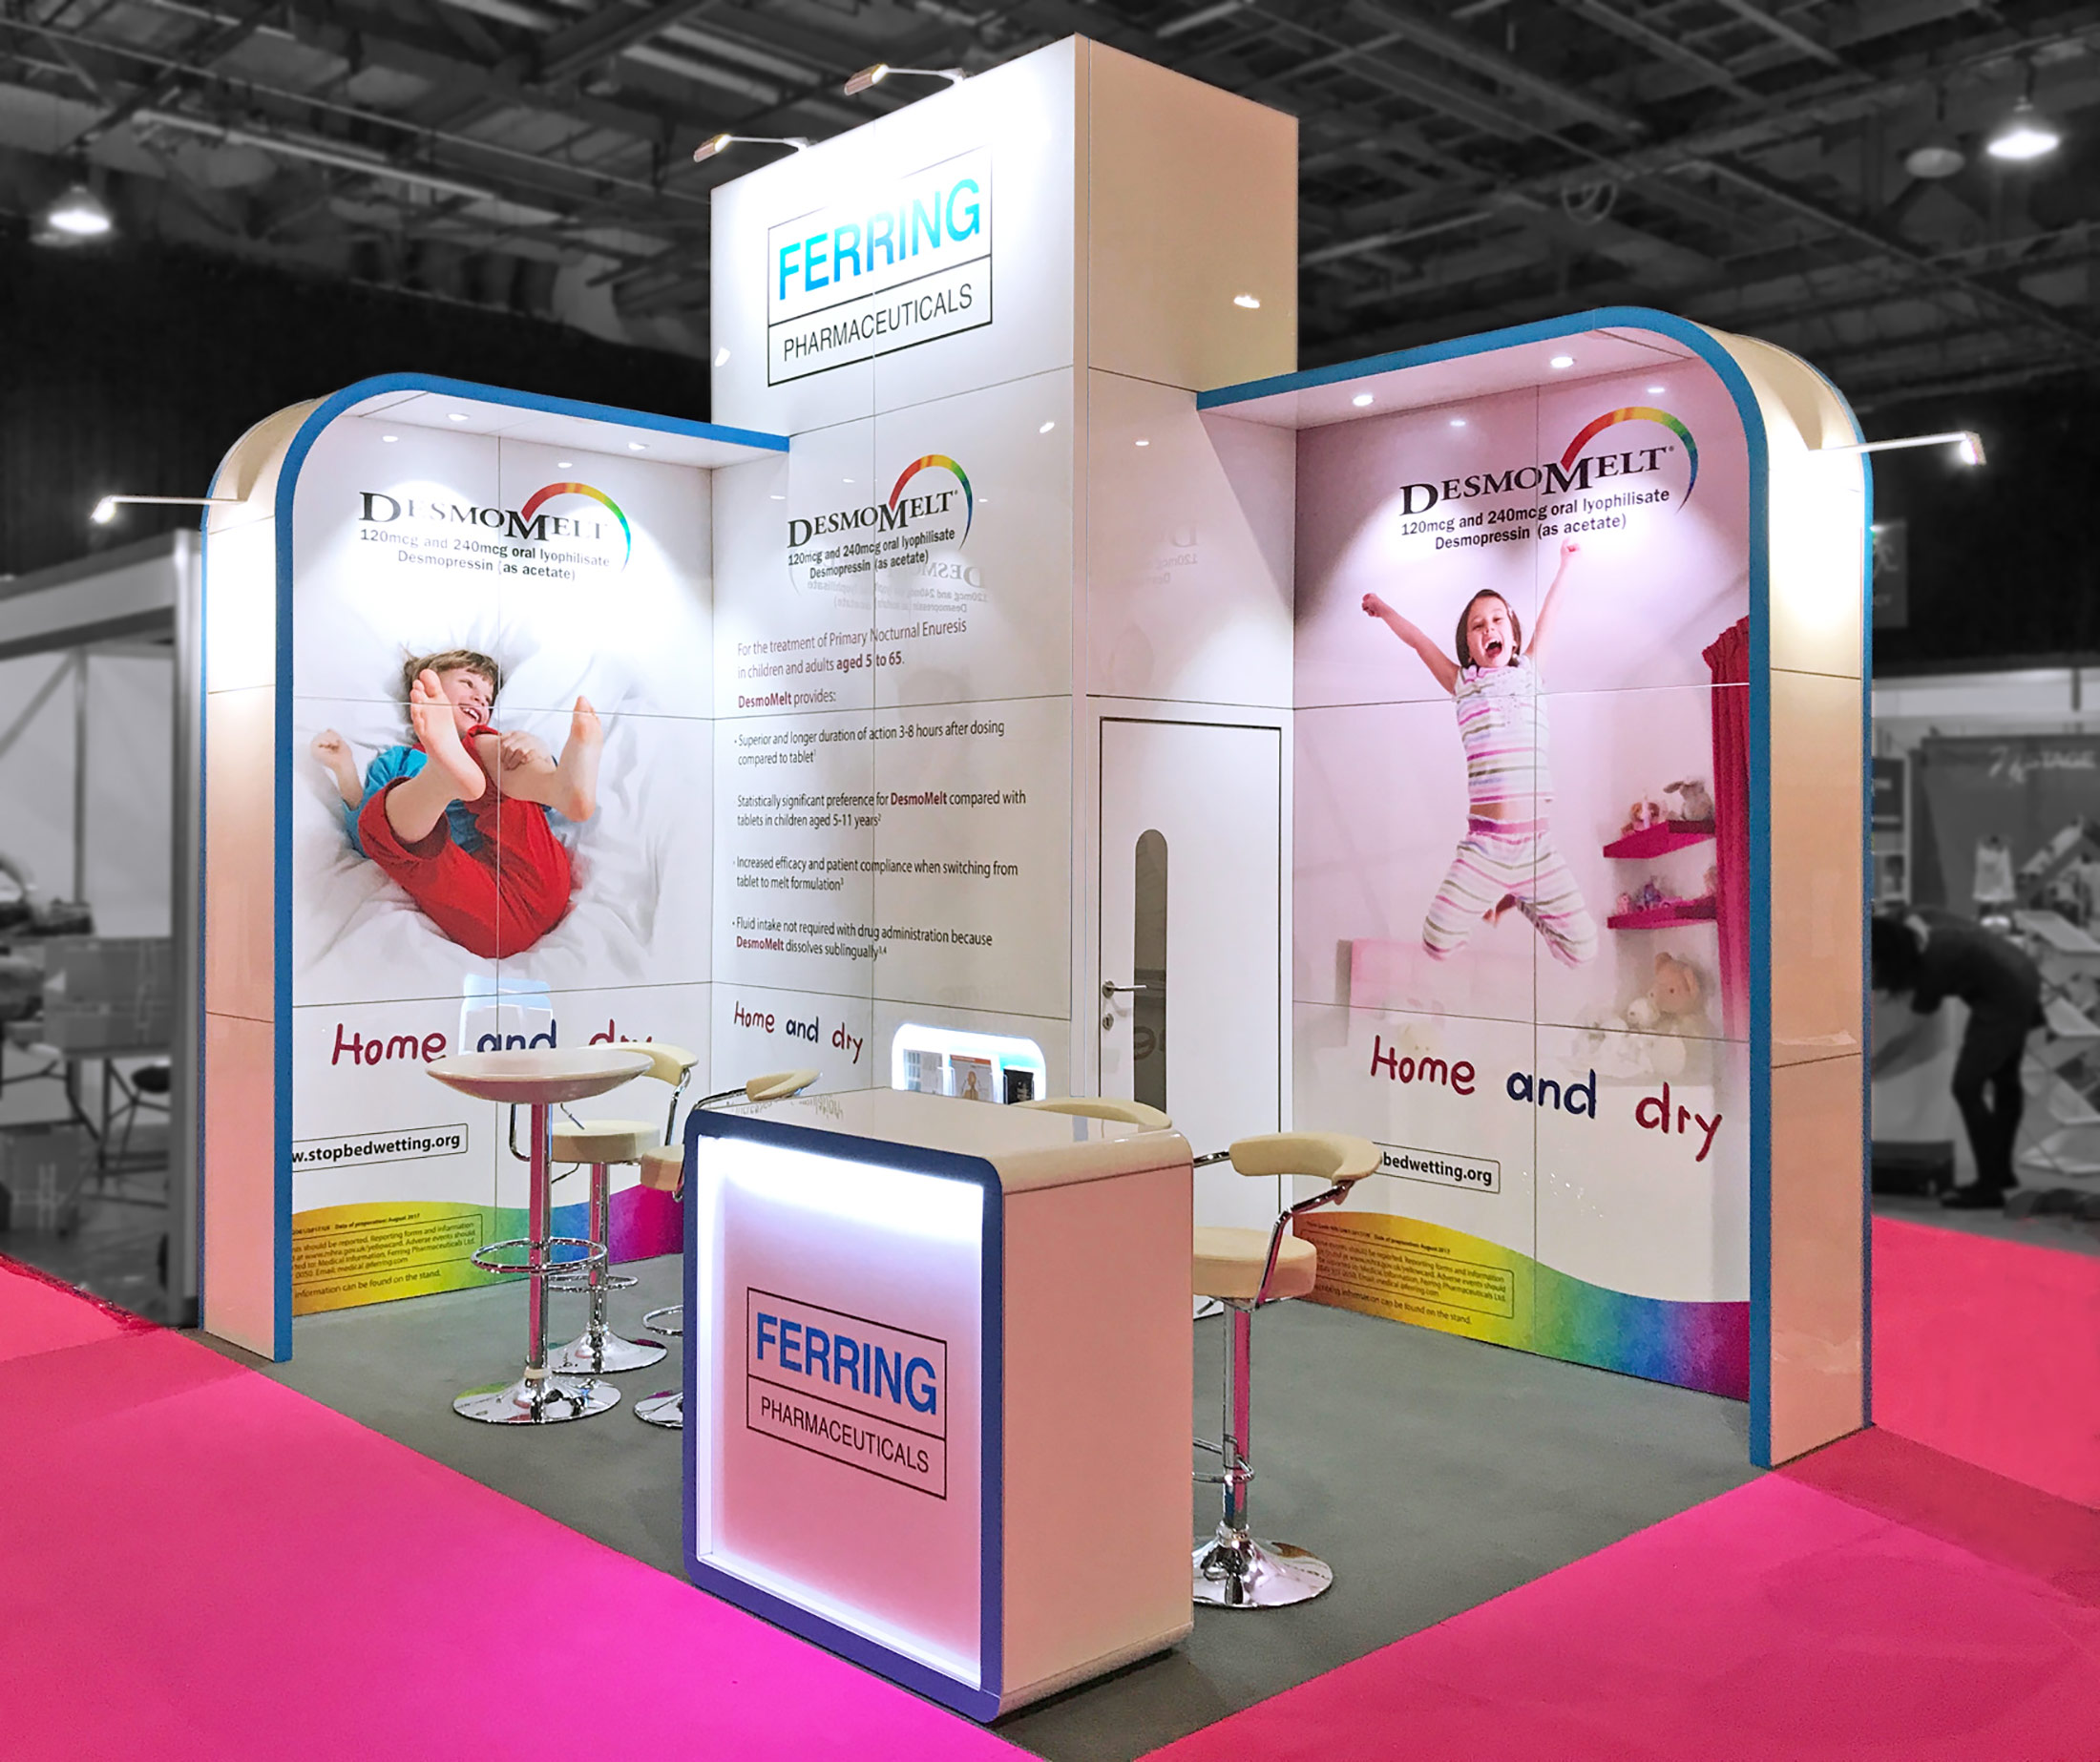 Exhibition Stand Design Glasgow : Newcom exhibitions ⇒ stand designer and builder in united kingdom